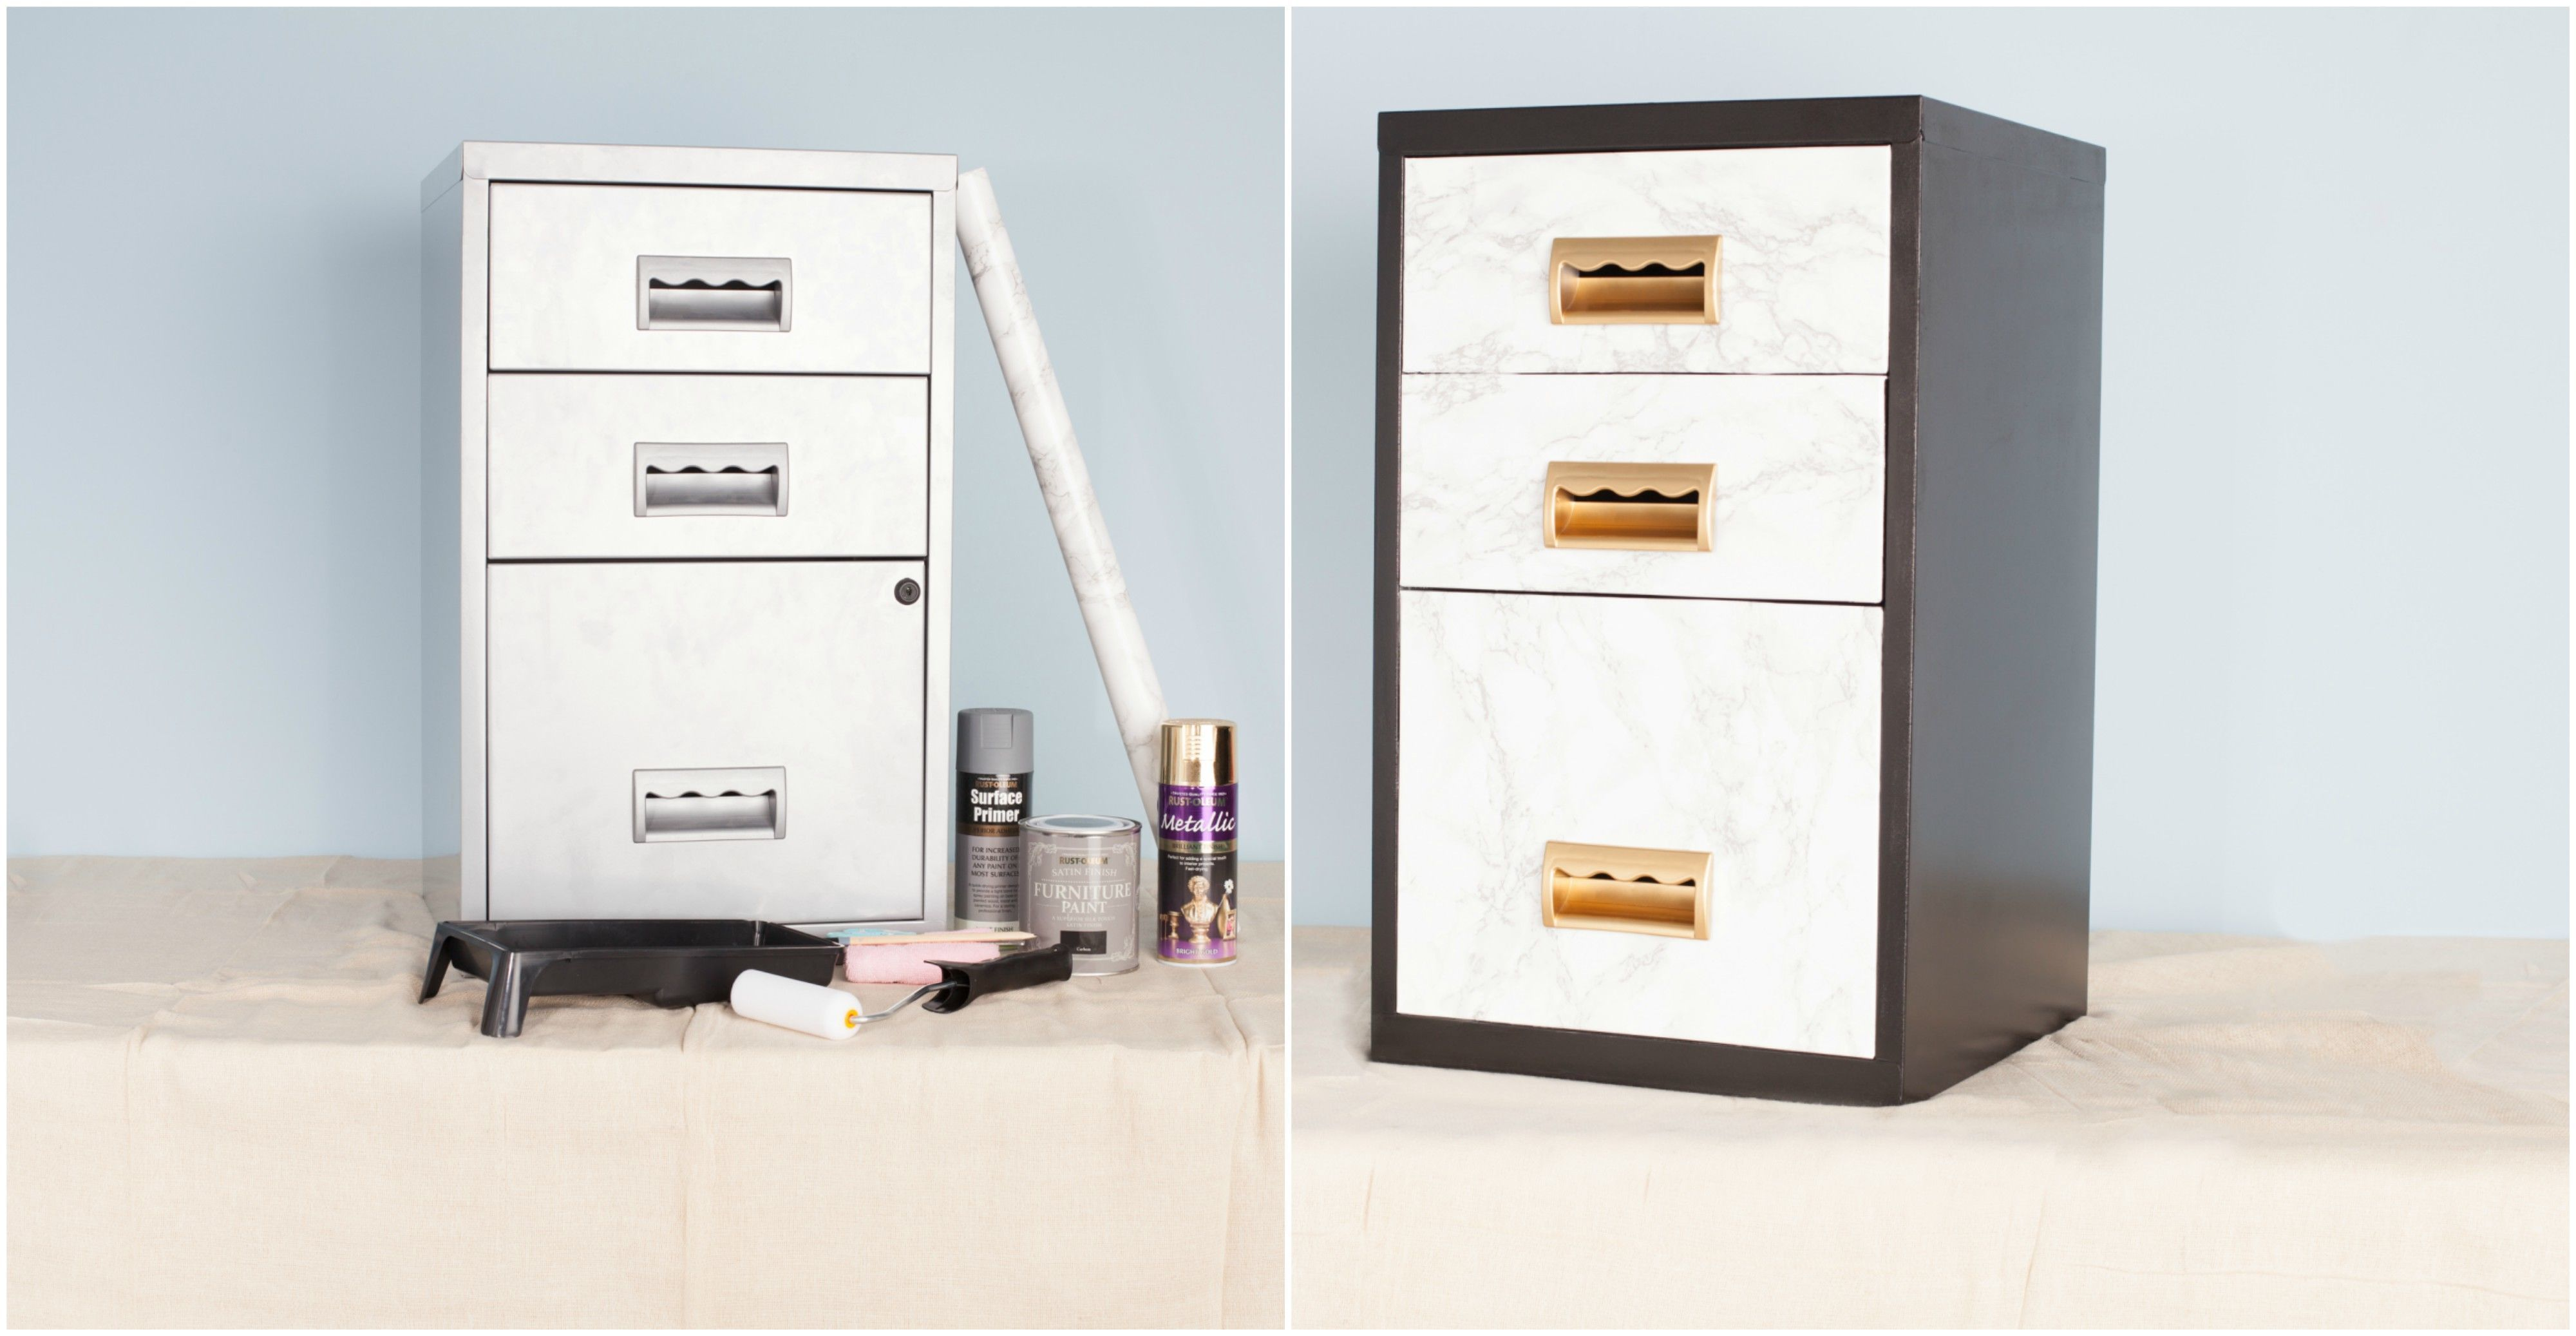 Filing cabinet and storage system - before and after & Transform a metal filing cabinet into a stylish set of storage drawers